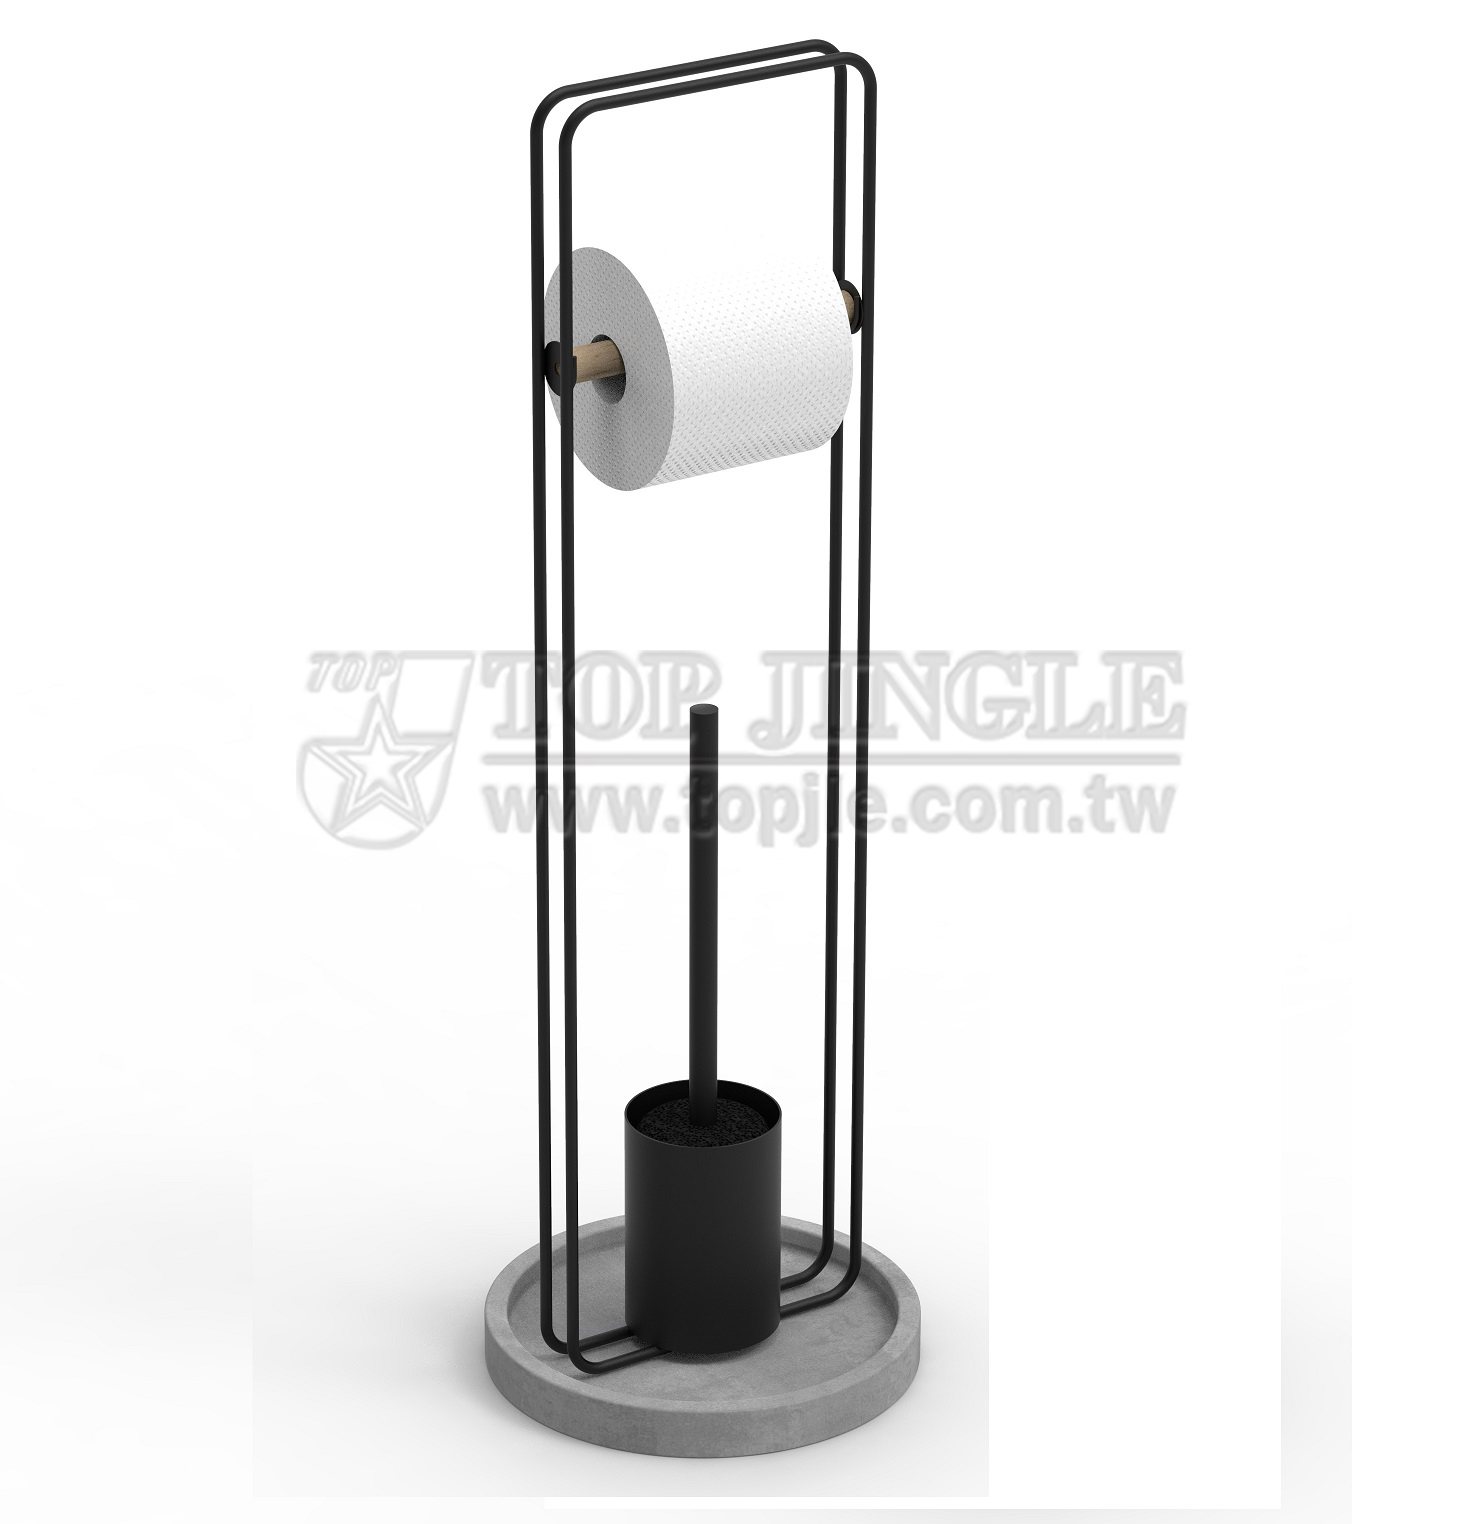 Concrete Toilet Brush And Paper Holder Manufacturer Top Jingle